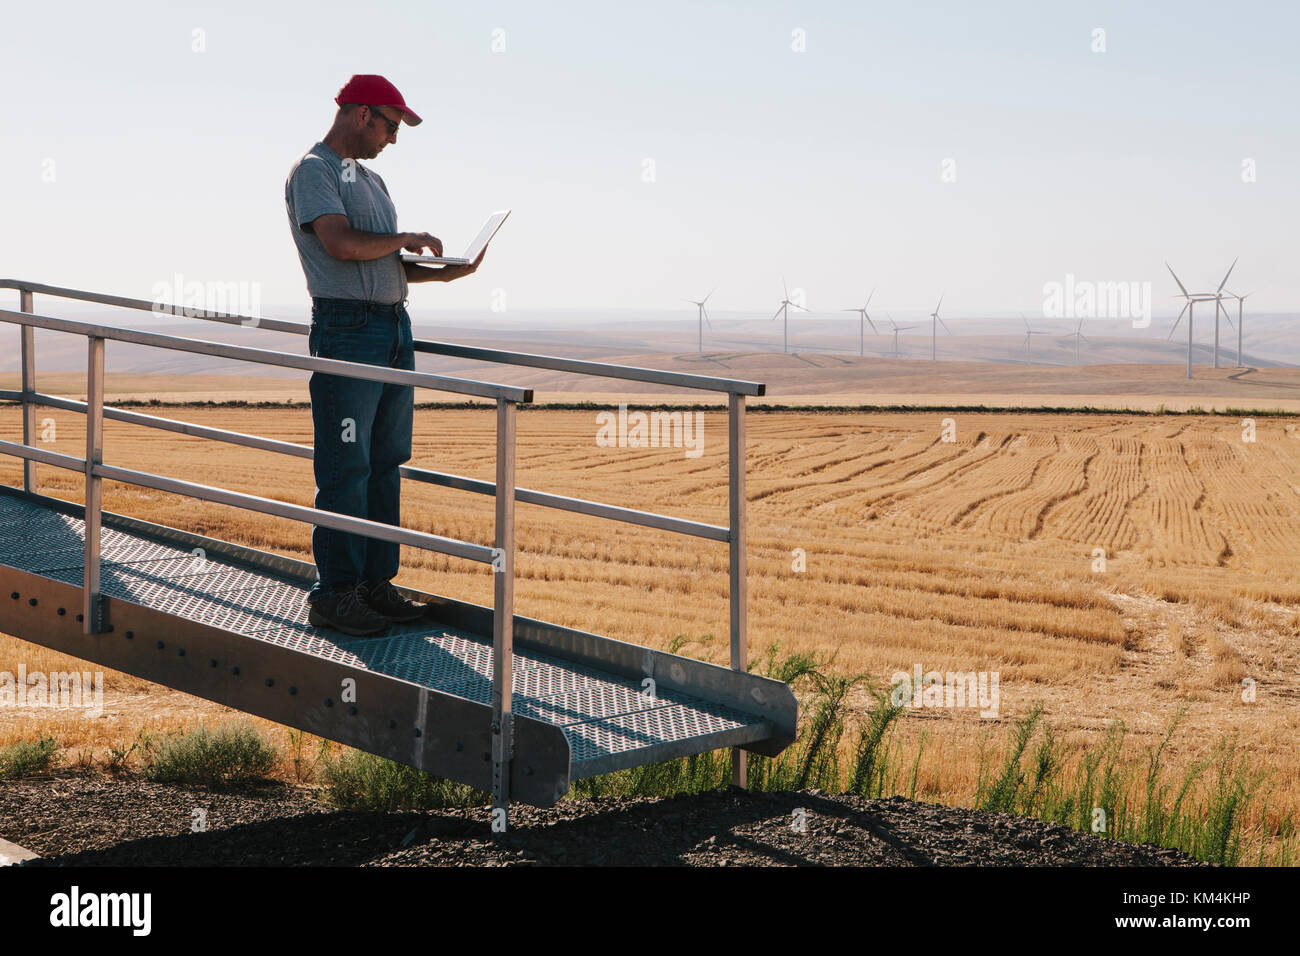 A wind farm technician standing and using a laptop at the base of a turbine on a wind farm in open countryside at - Stock Image